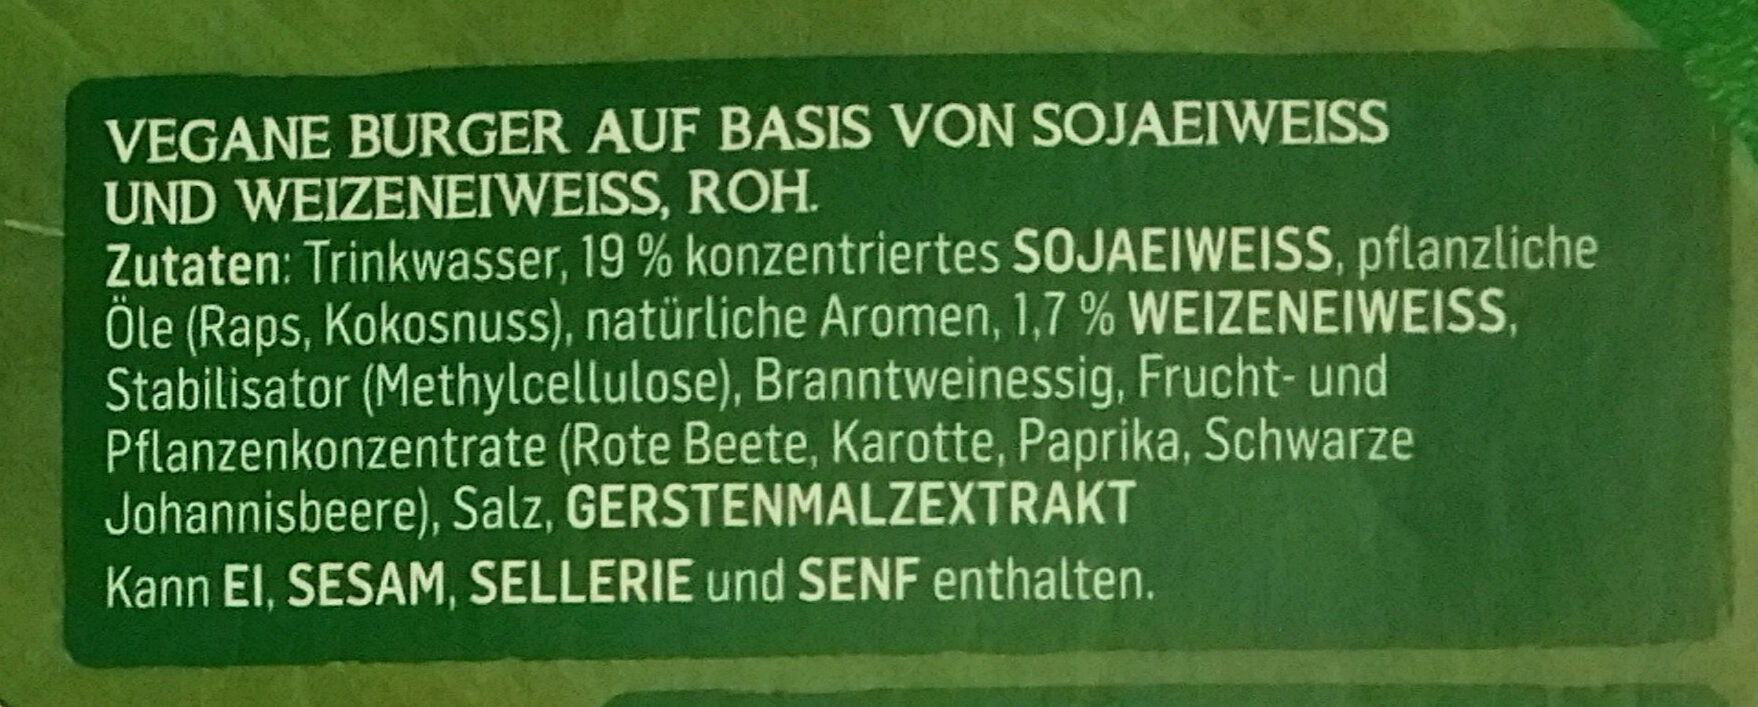 Incredible Burger aus Soja- und Weizeneiweiss, roh - Ingrédients - de